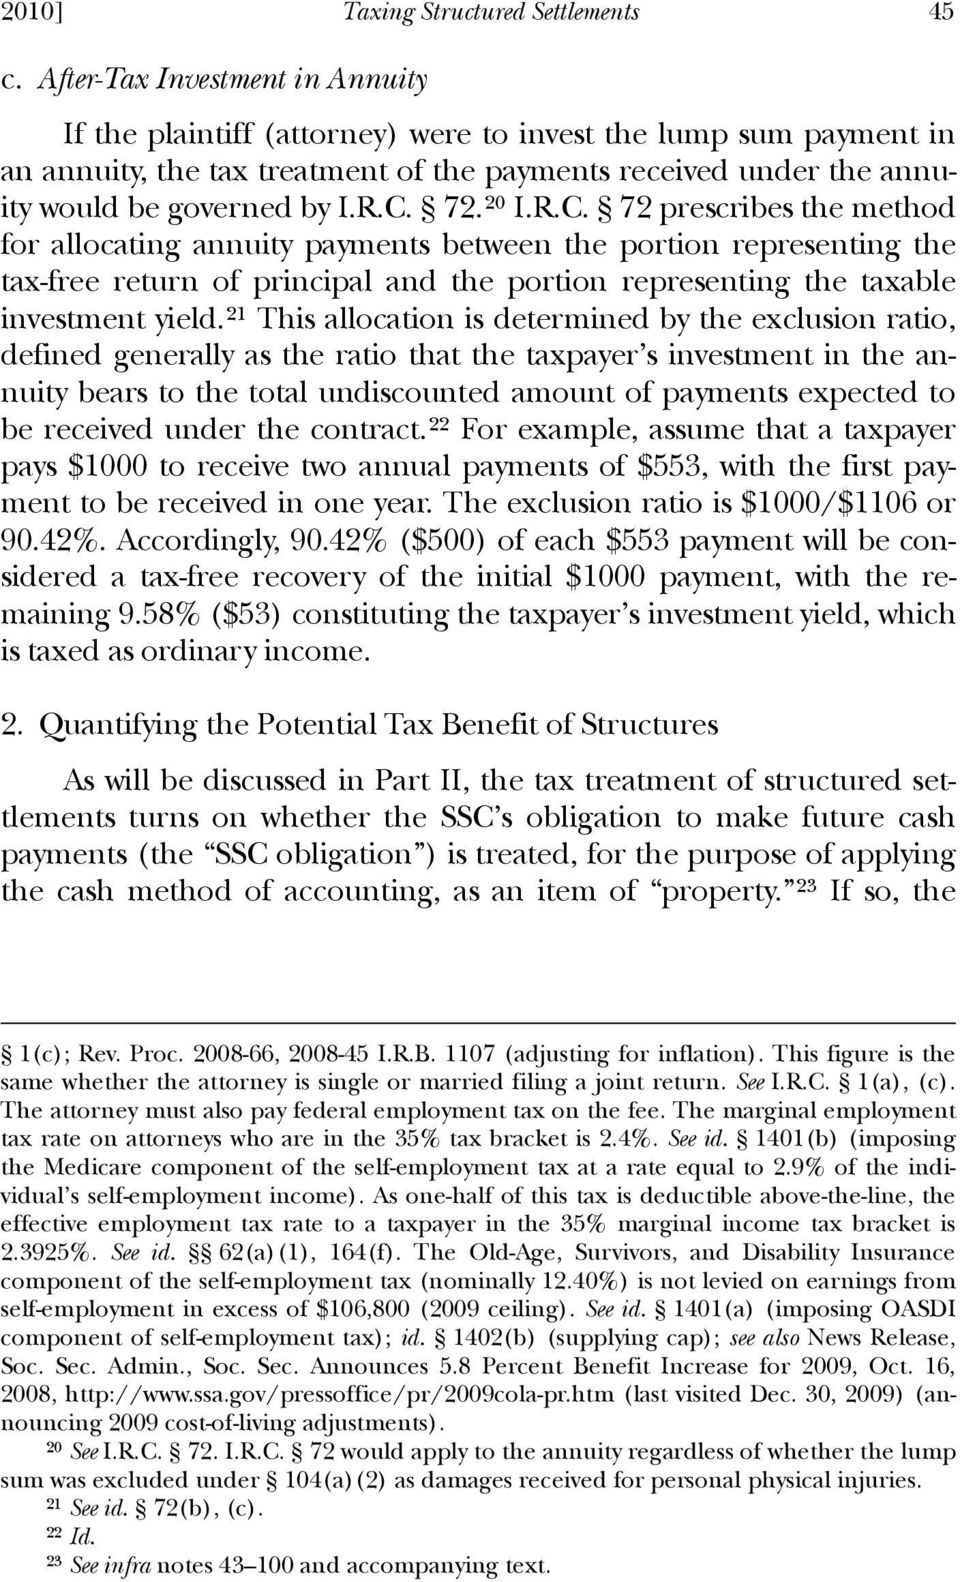 72.20 I.R.C. 72 prescribes the method for allocating annuity payments between the portion representing the tax-free return of principal and the portion representing the taxable investment yield.